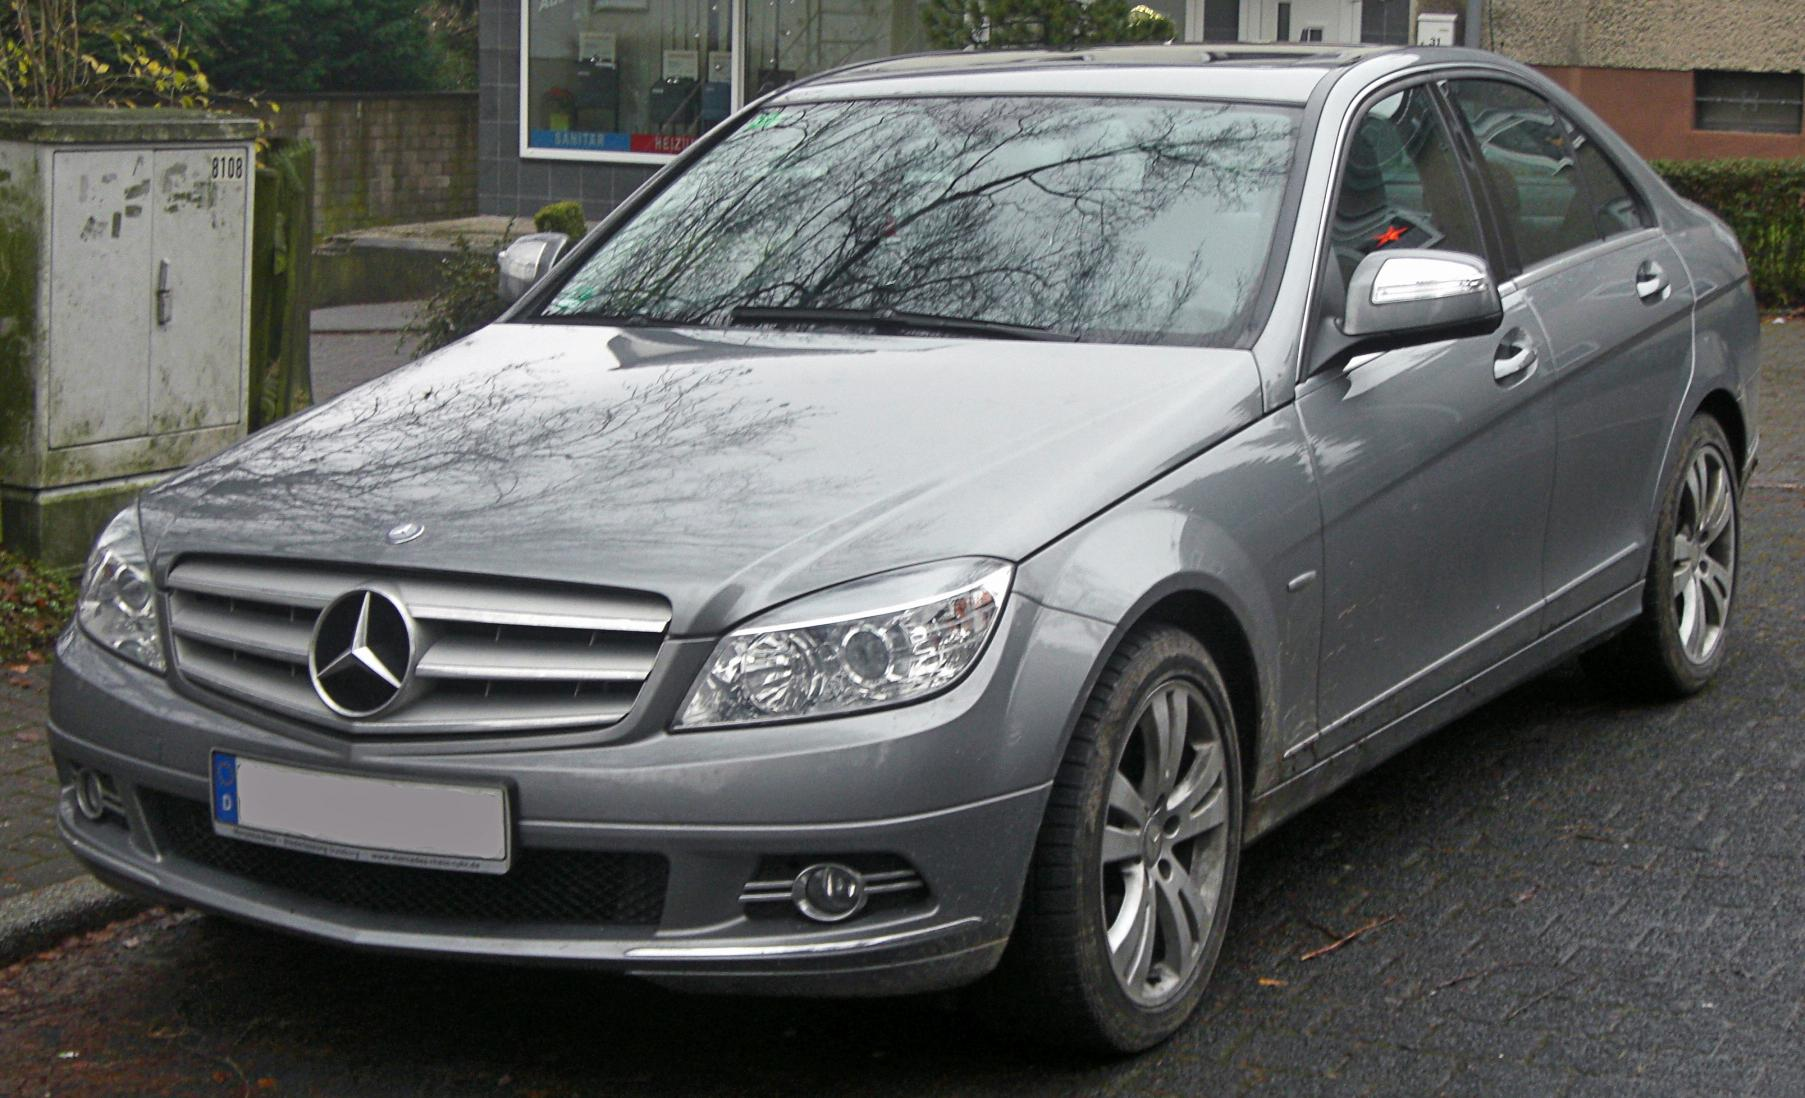 file mercedes c 220 cdi avantgarde w204 seit 2007 front mj jpg wikimedia commons. Black Bedroom Furniture Sets. Home Design Ideas